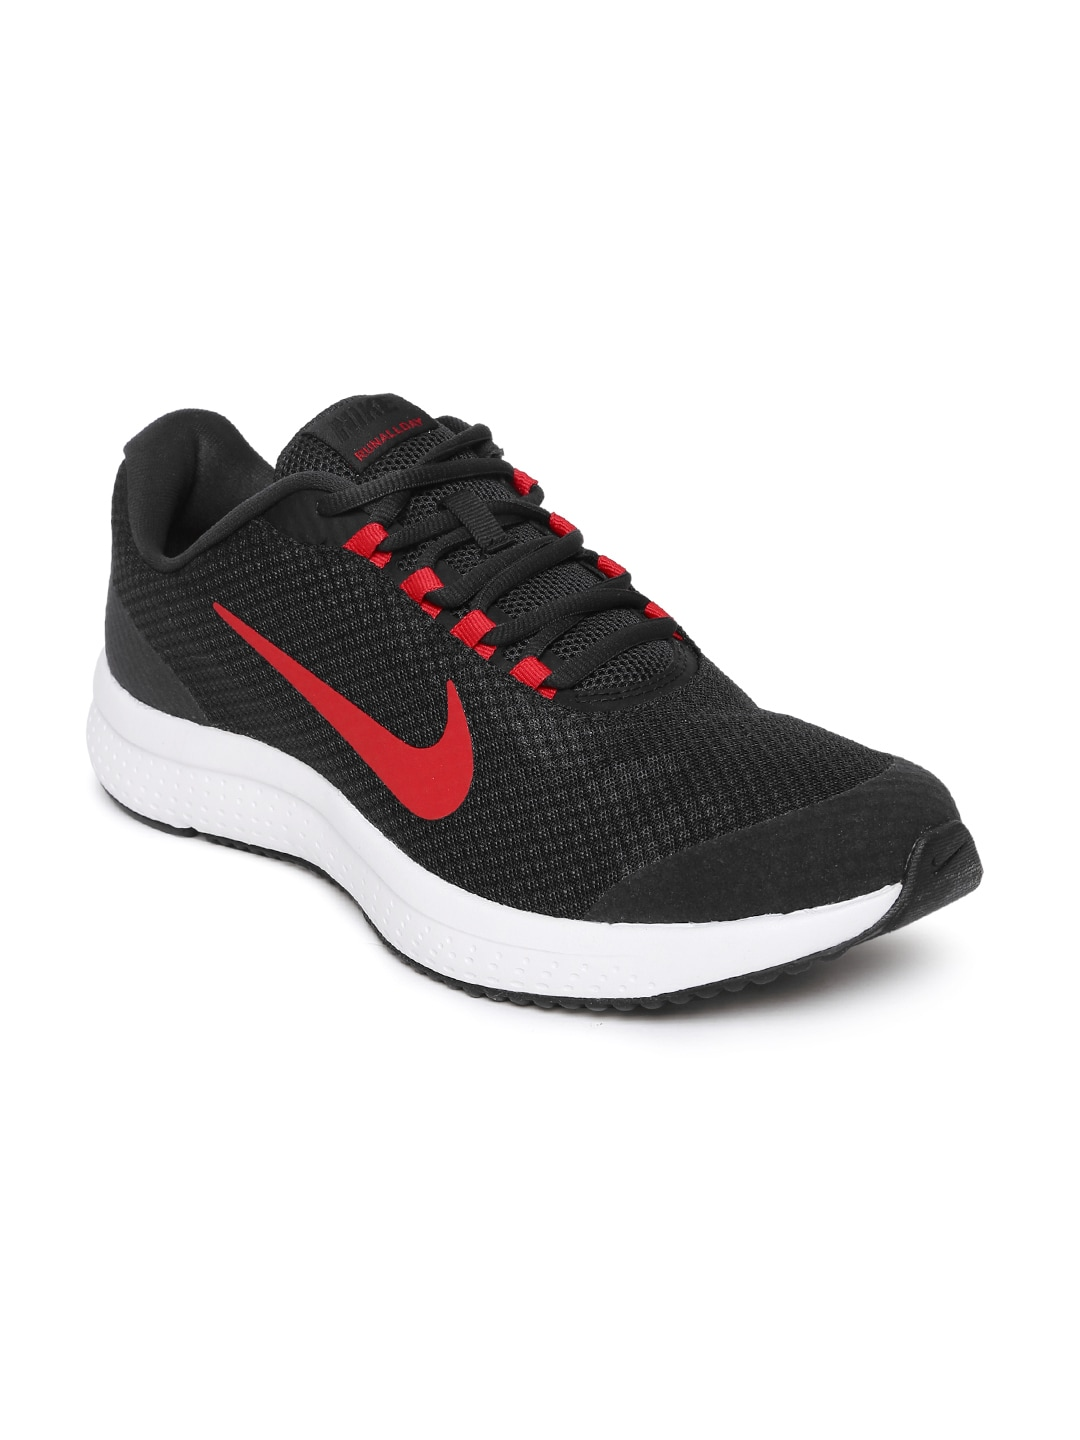 b9755a0e37ea Nike Running Shoes - Buy Nike Running Shoes Online